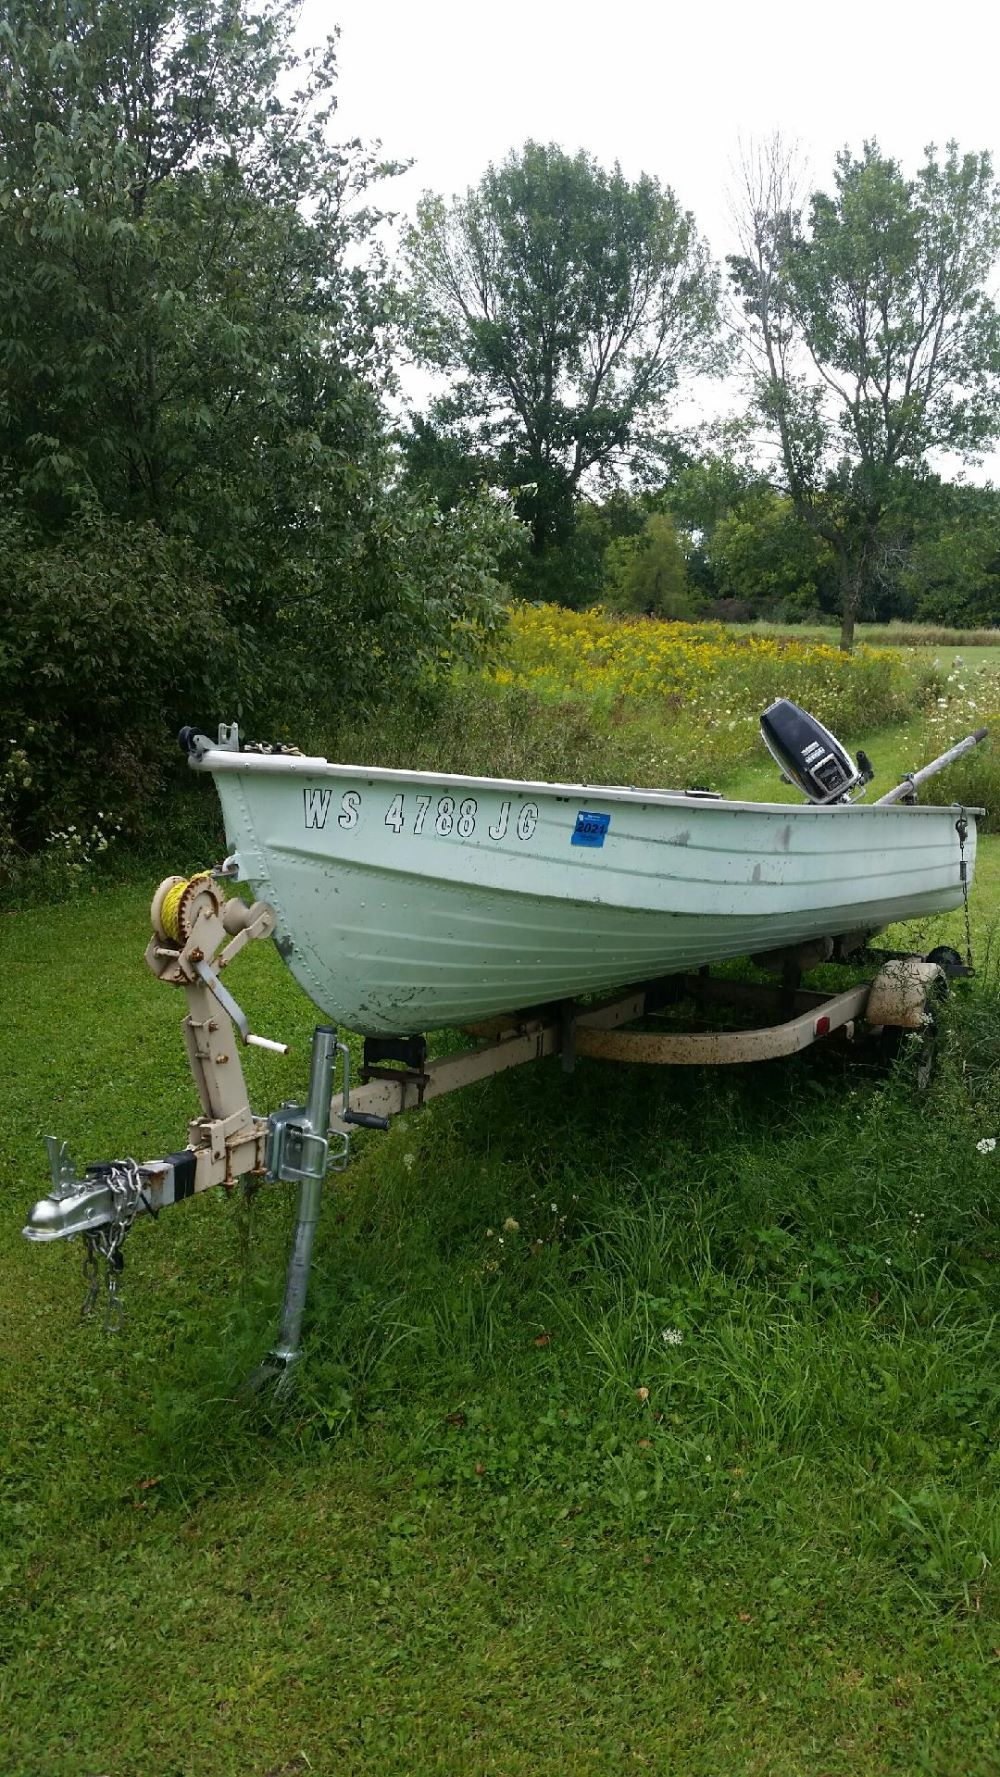 14' Mirrocraft aluminum fishing boat with motor and trailer $550